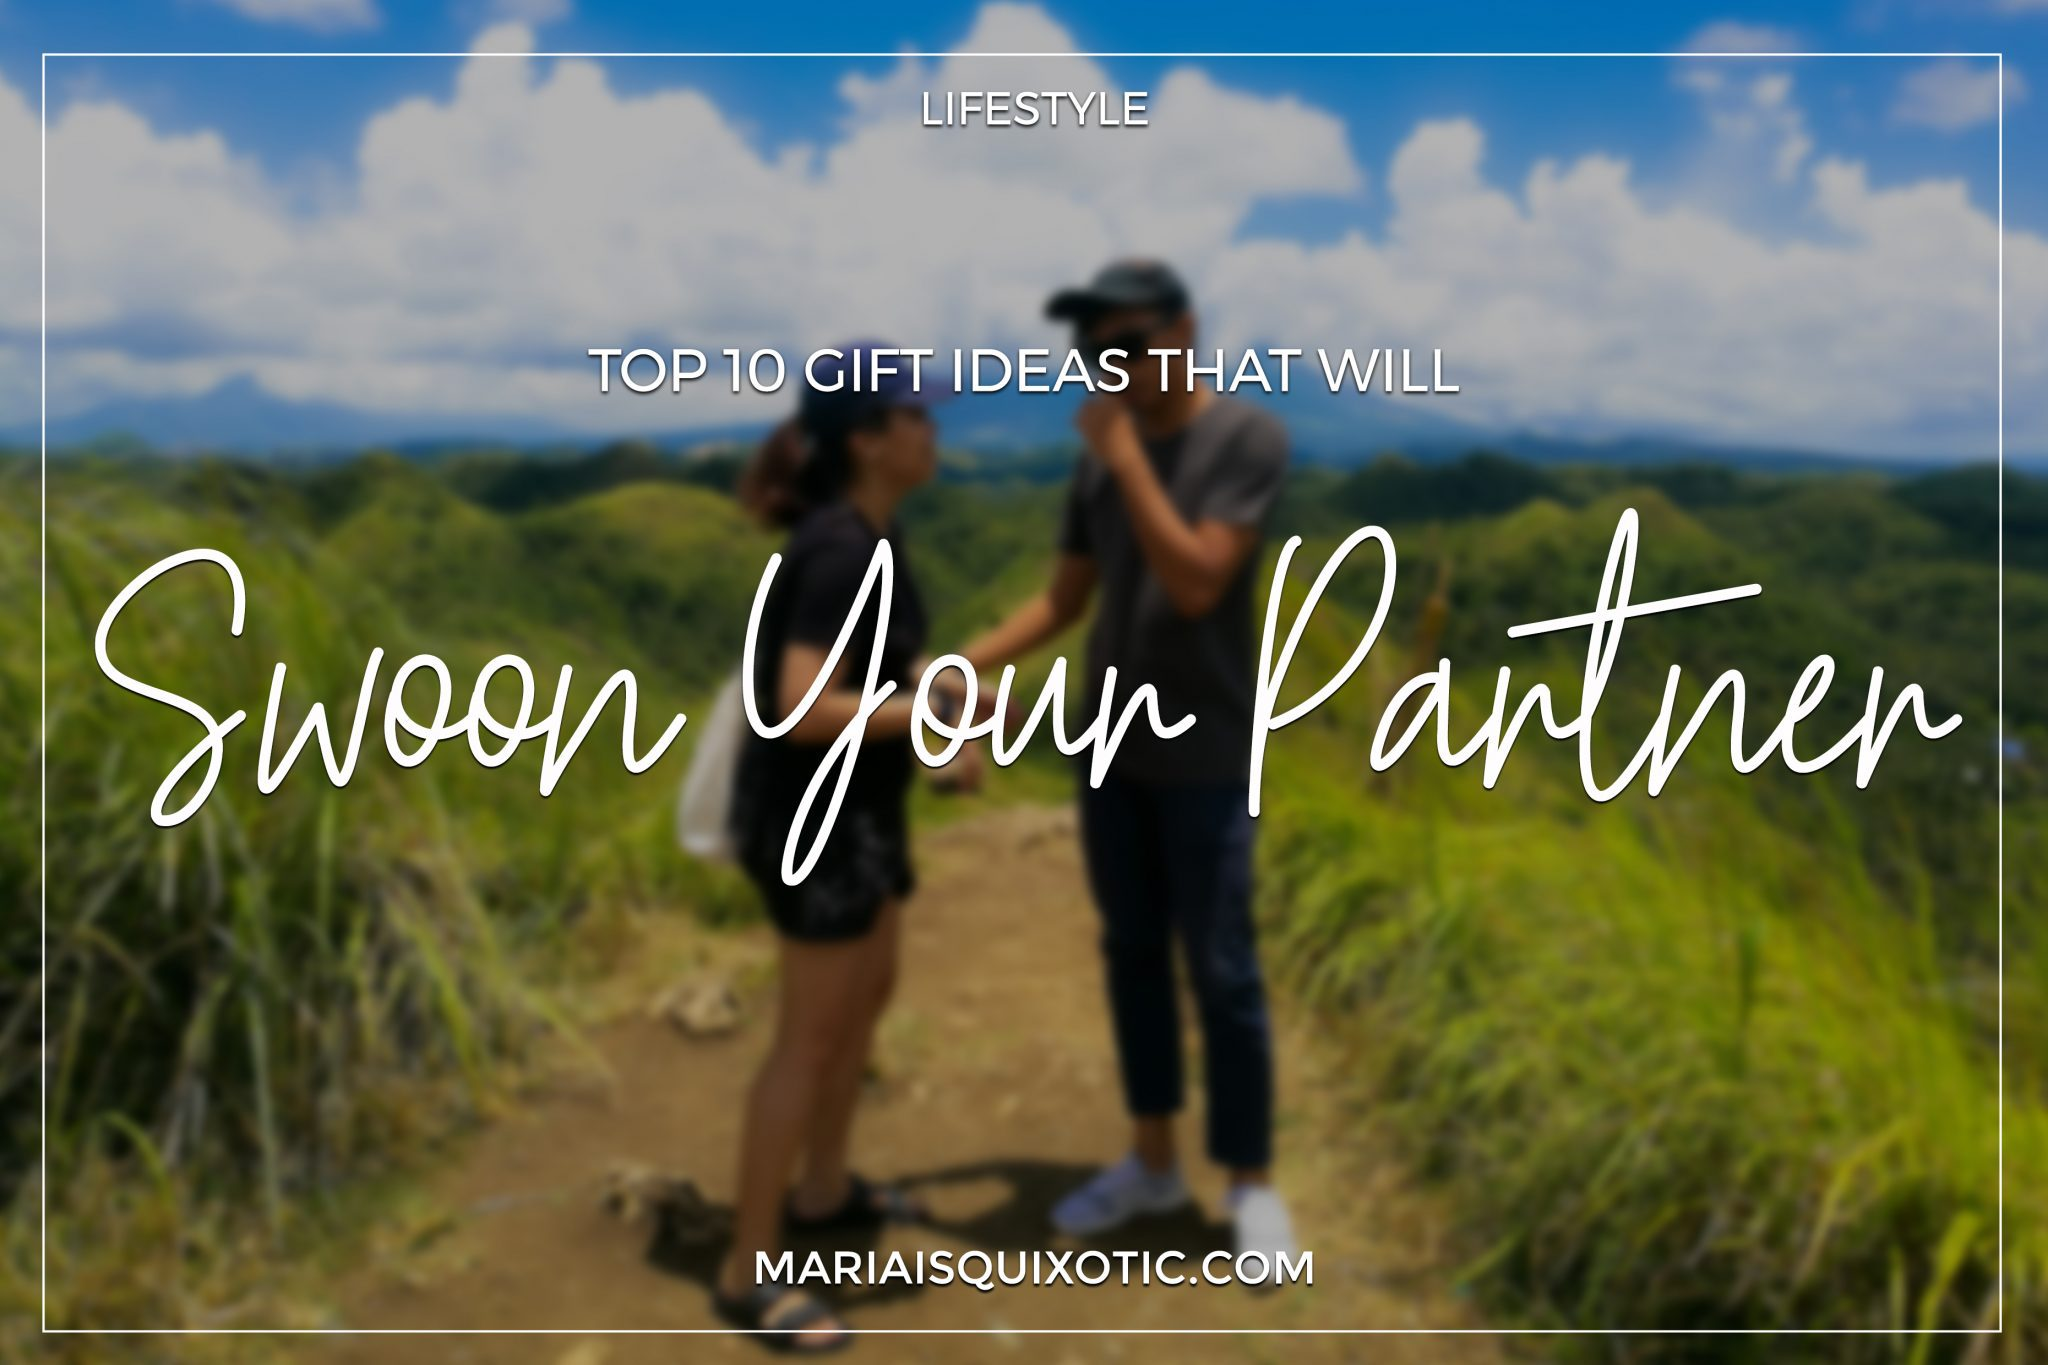 Top 10 Gift Ideas that will Swoon Your Partner